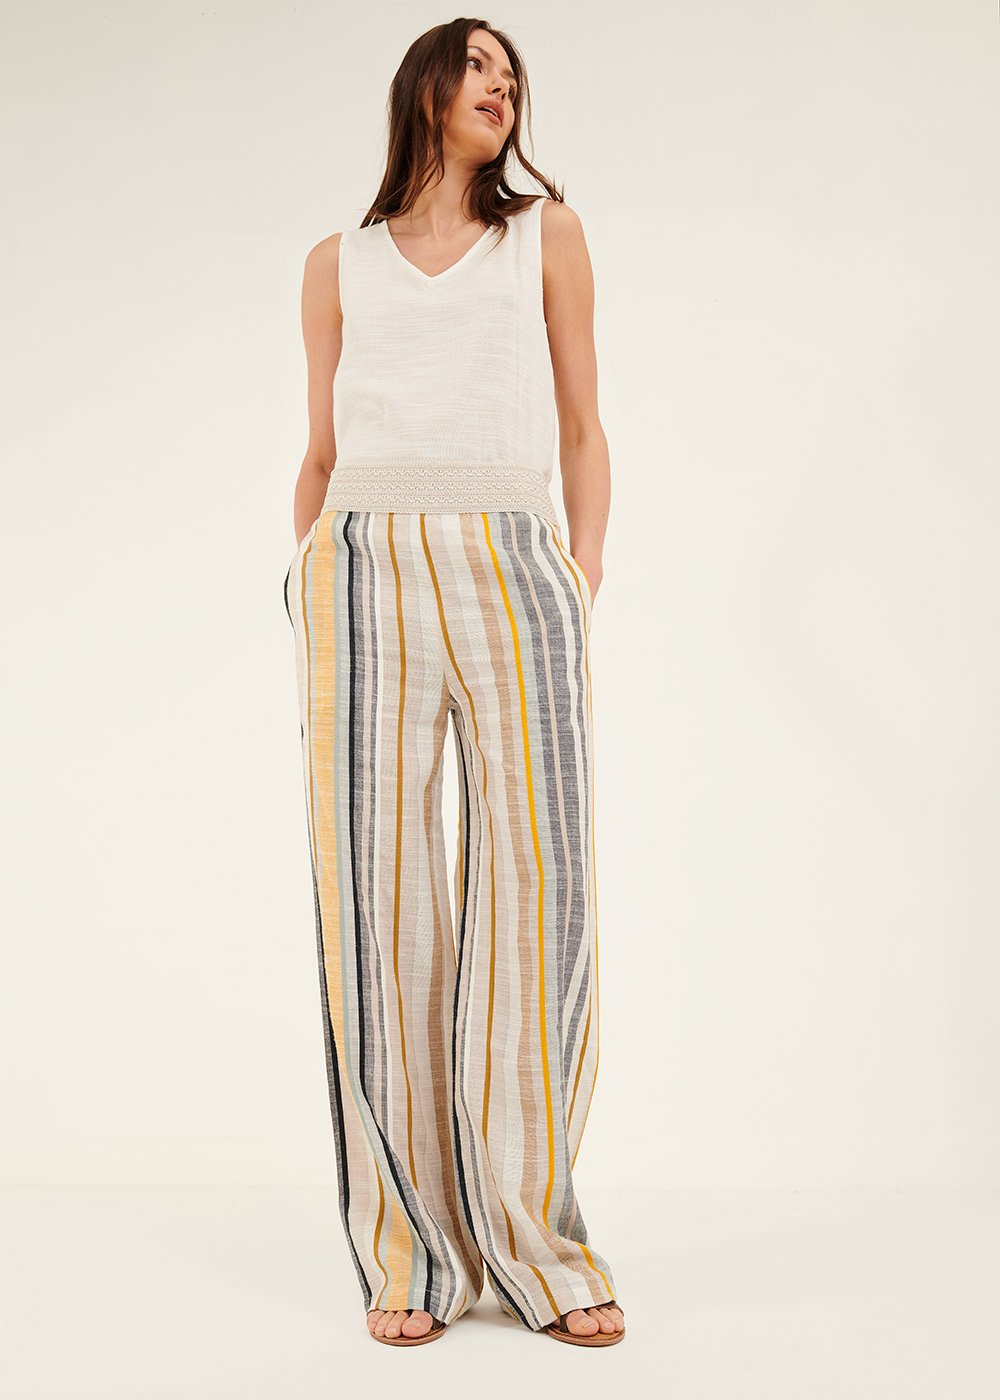 Pedro trousers with vertical stripes - White / Oliva /  Stripes - Woman